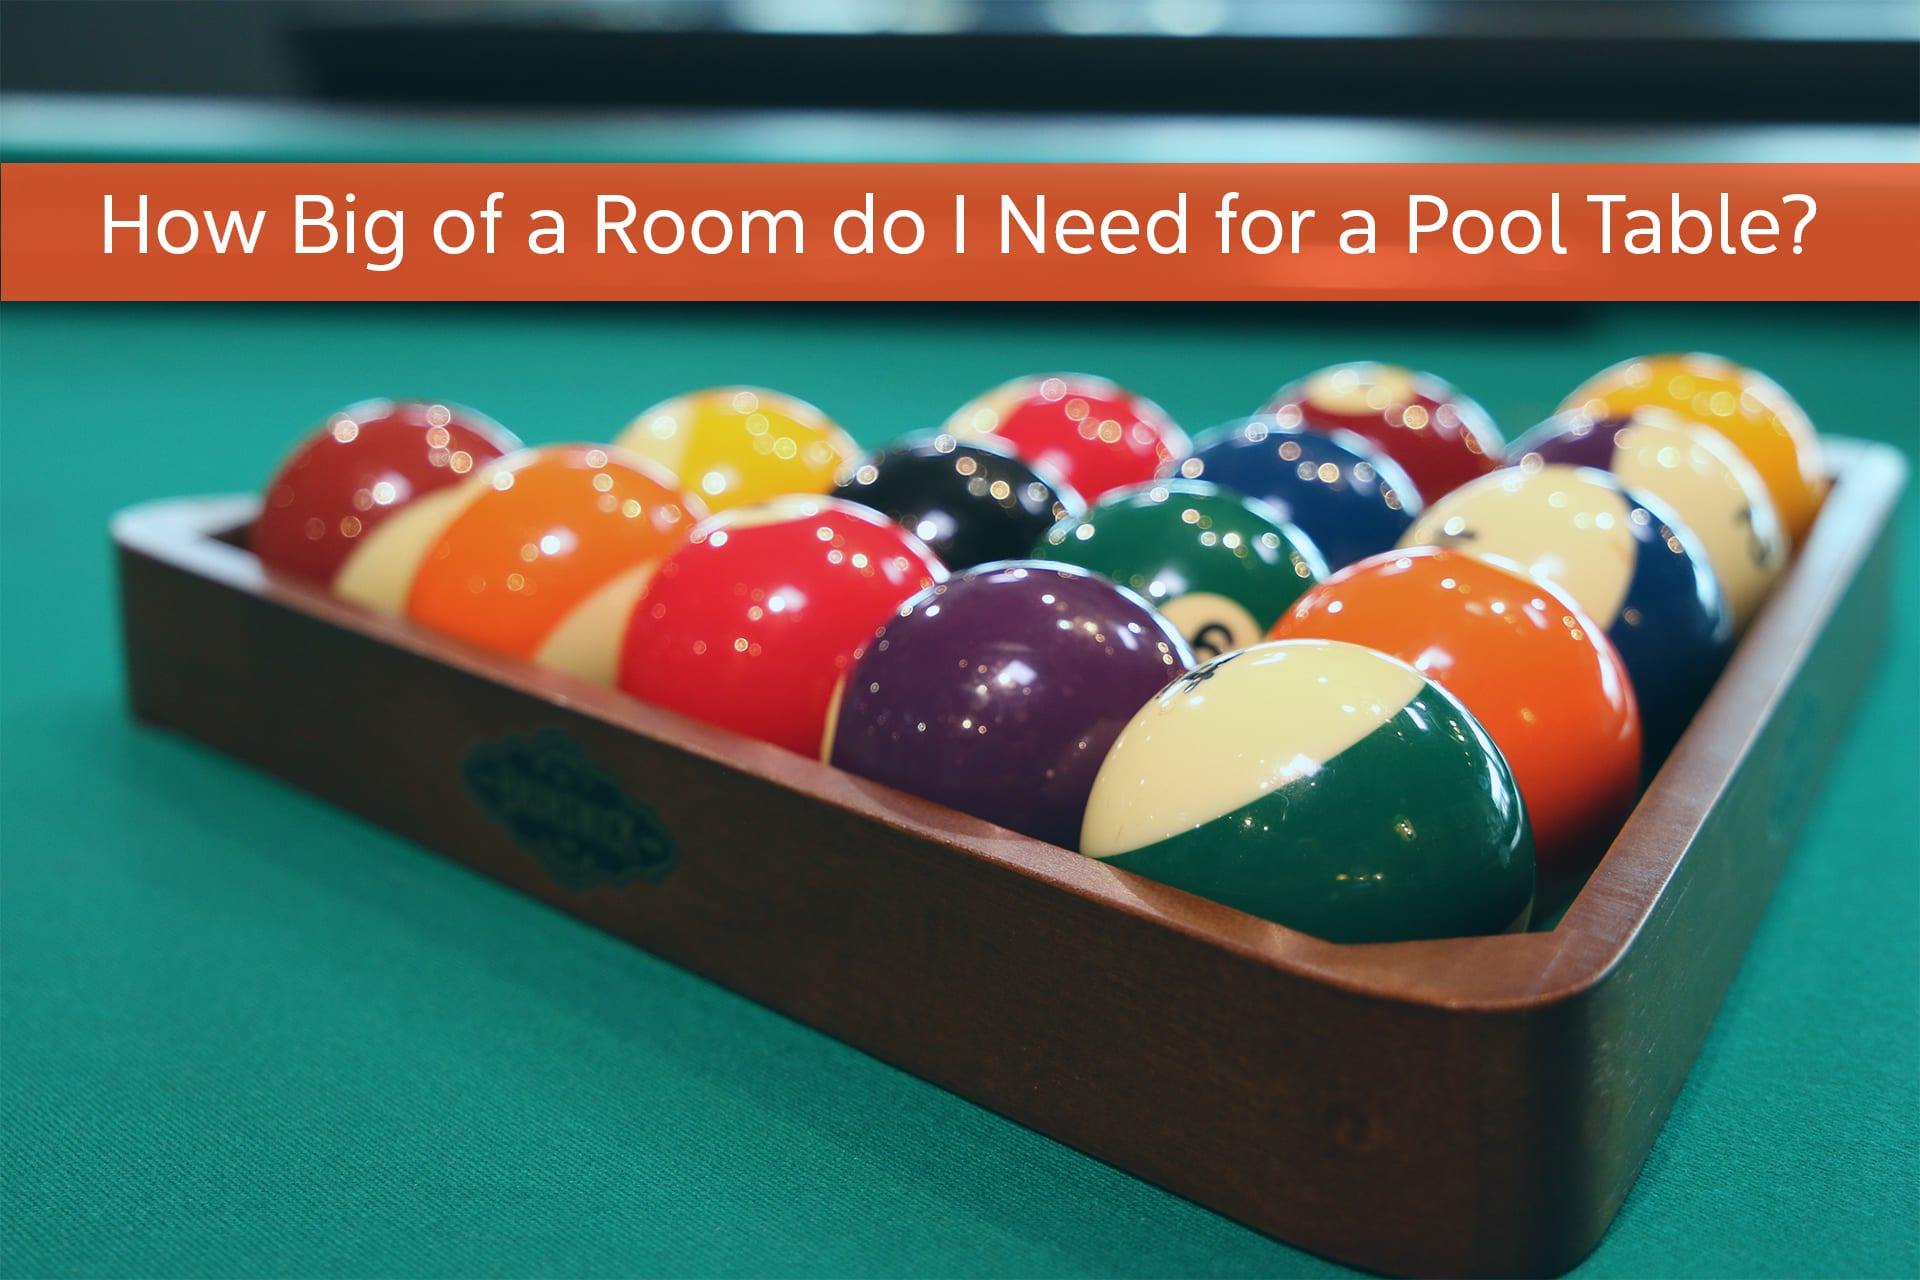 Charmant Answers How Big Of A Room Do I Need For A Pool Table?